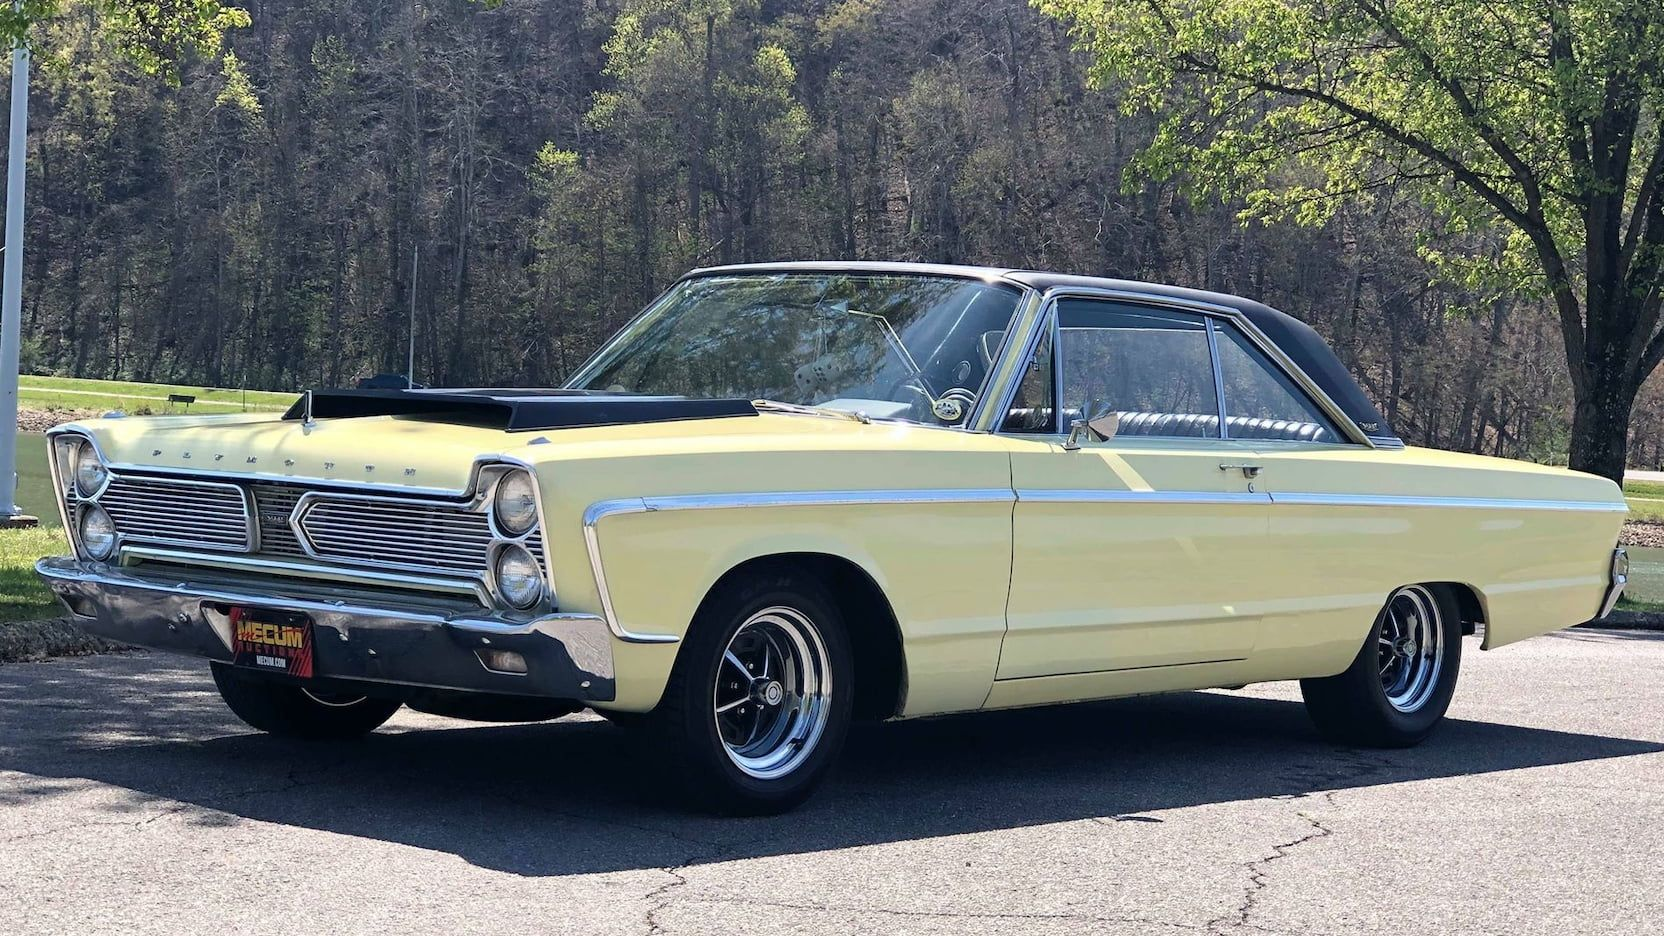 1966 Plymouth Fury Vip Presented As Lot W21 At Indianapolis In Plymouth Fury Fury Plymouth